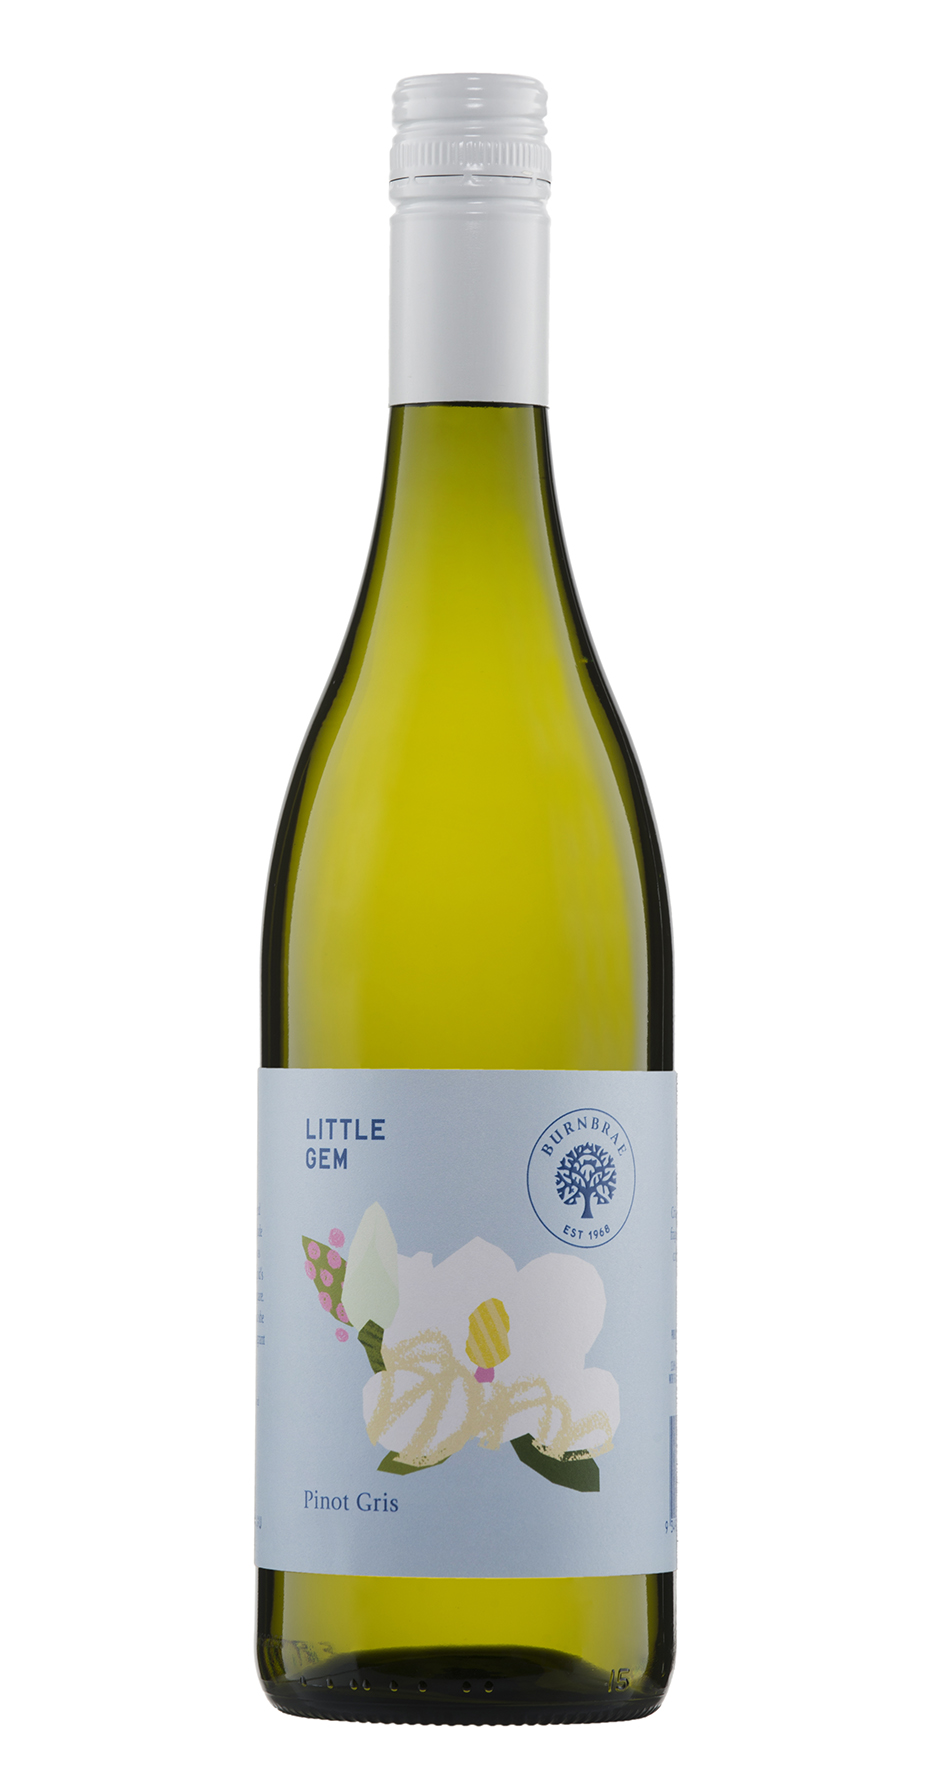 Little Gem Pinot Gris 2020